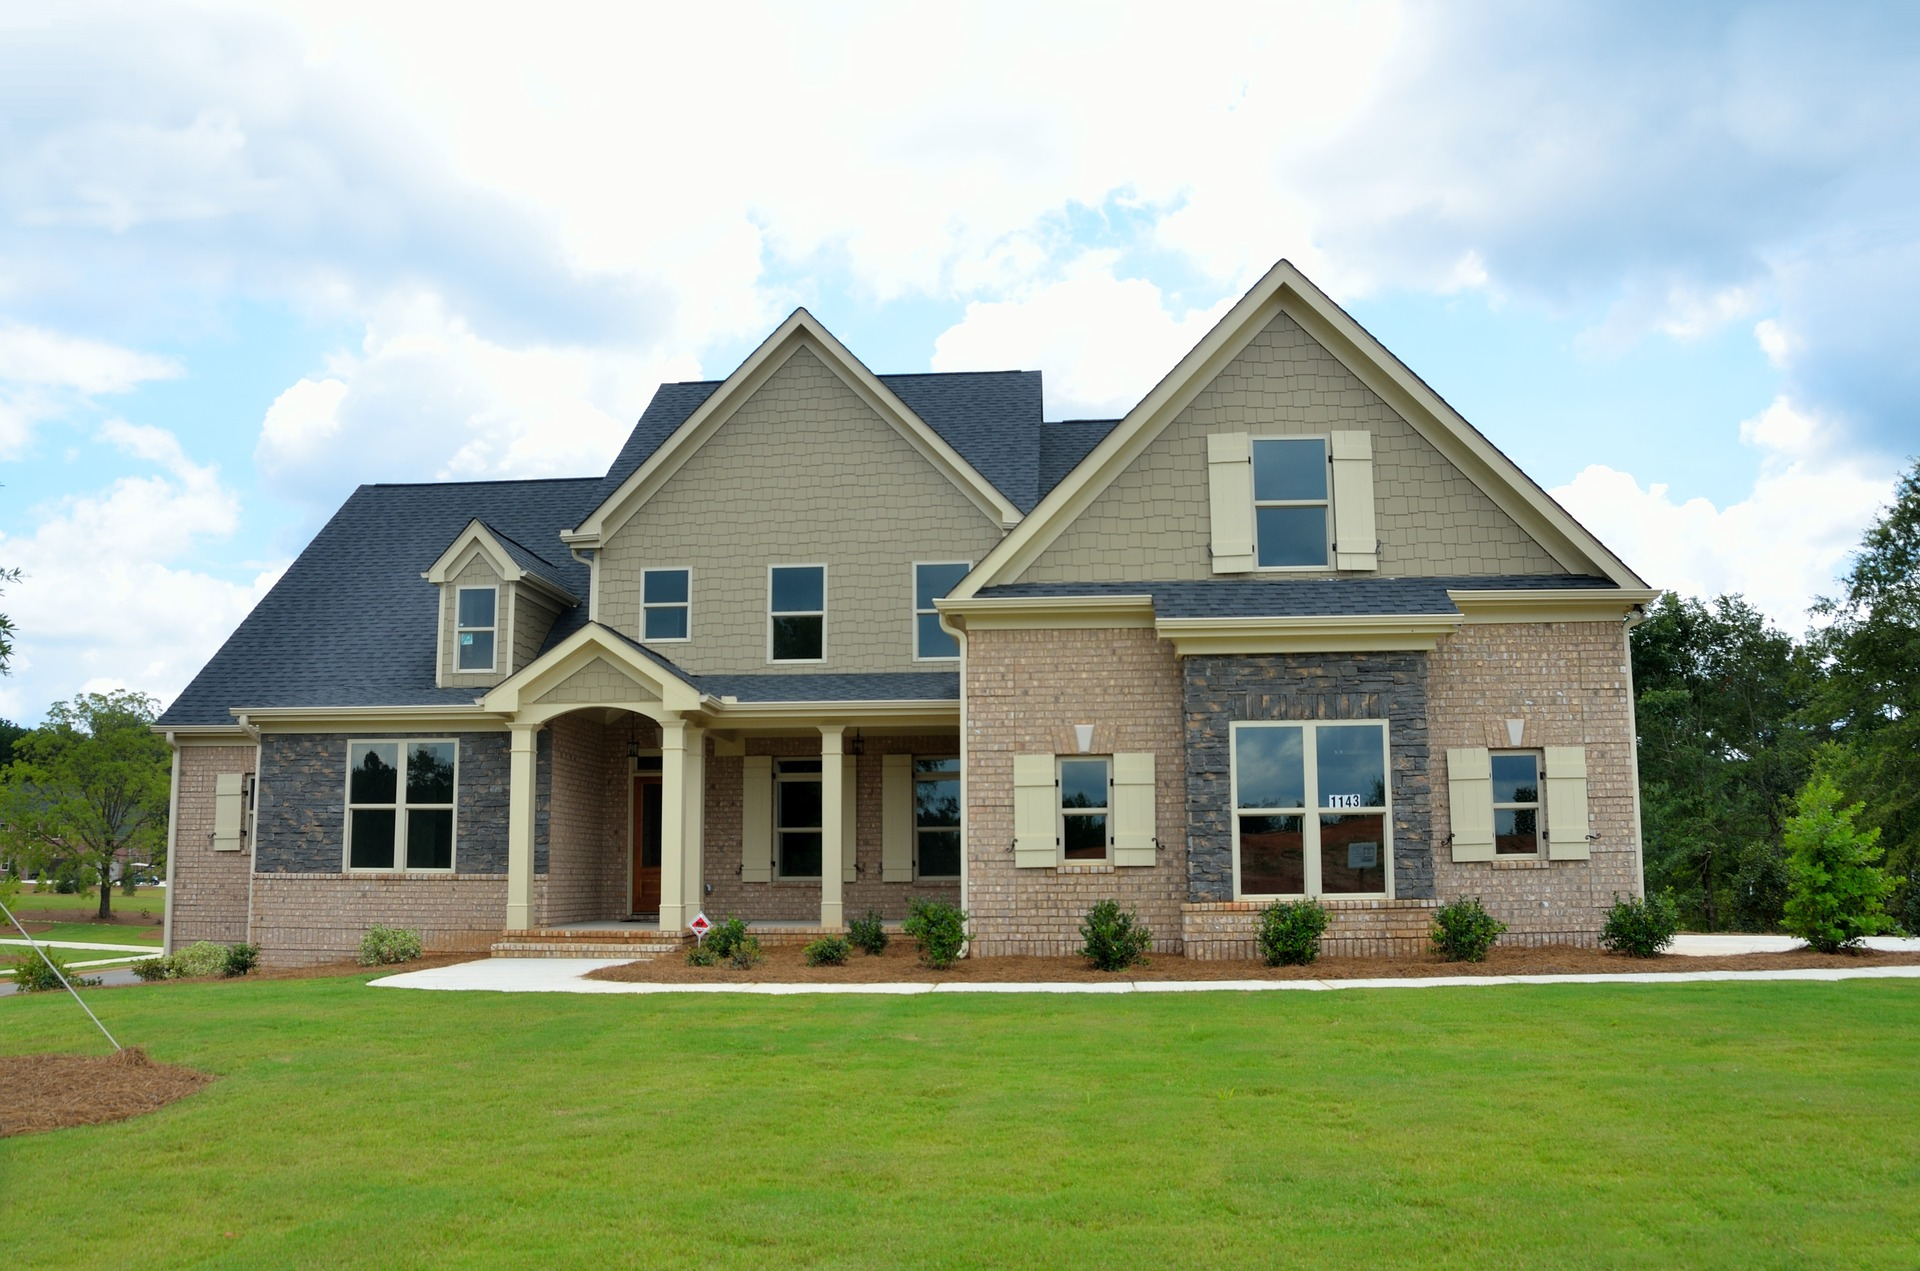 new house in clarksville tennessee